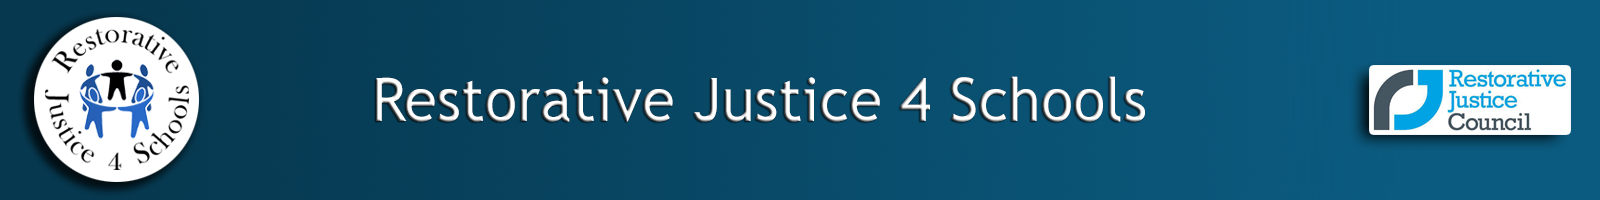 restorative justice essay uk From restorative justice what are the best arguments against restorative justice the uk & many western democracies have an inbalance of offender- victim rights.